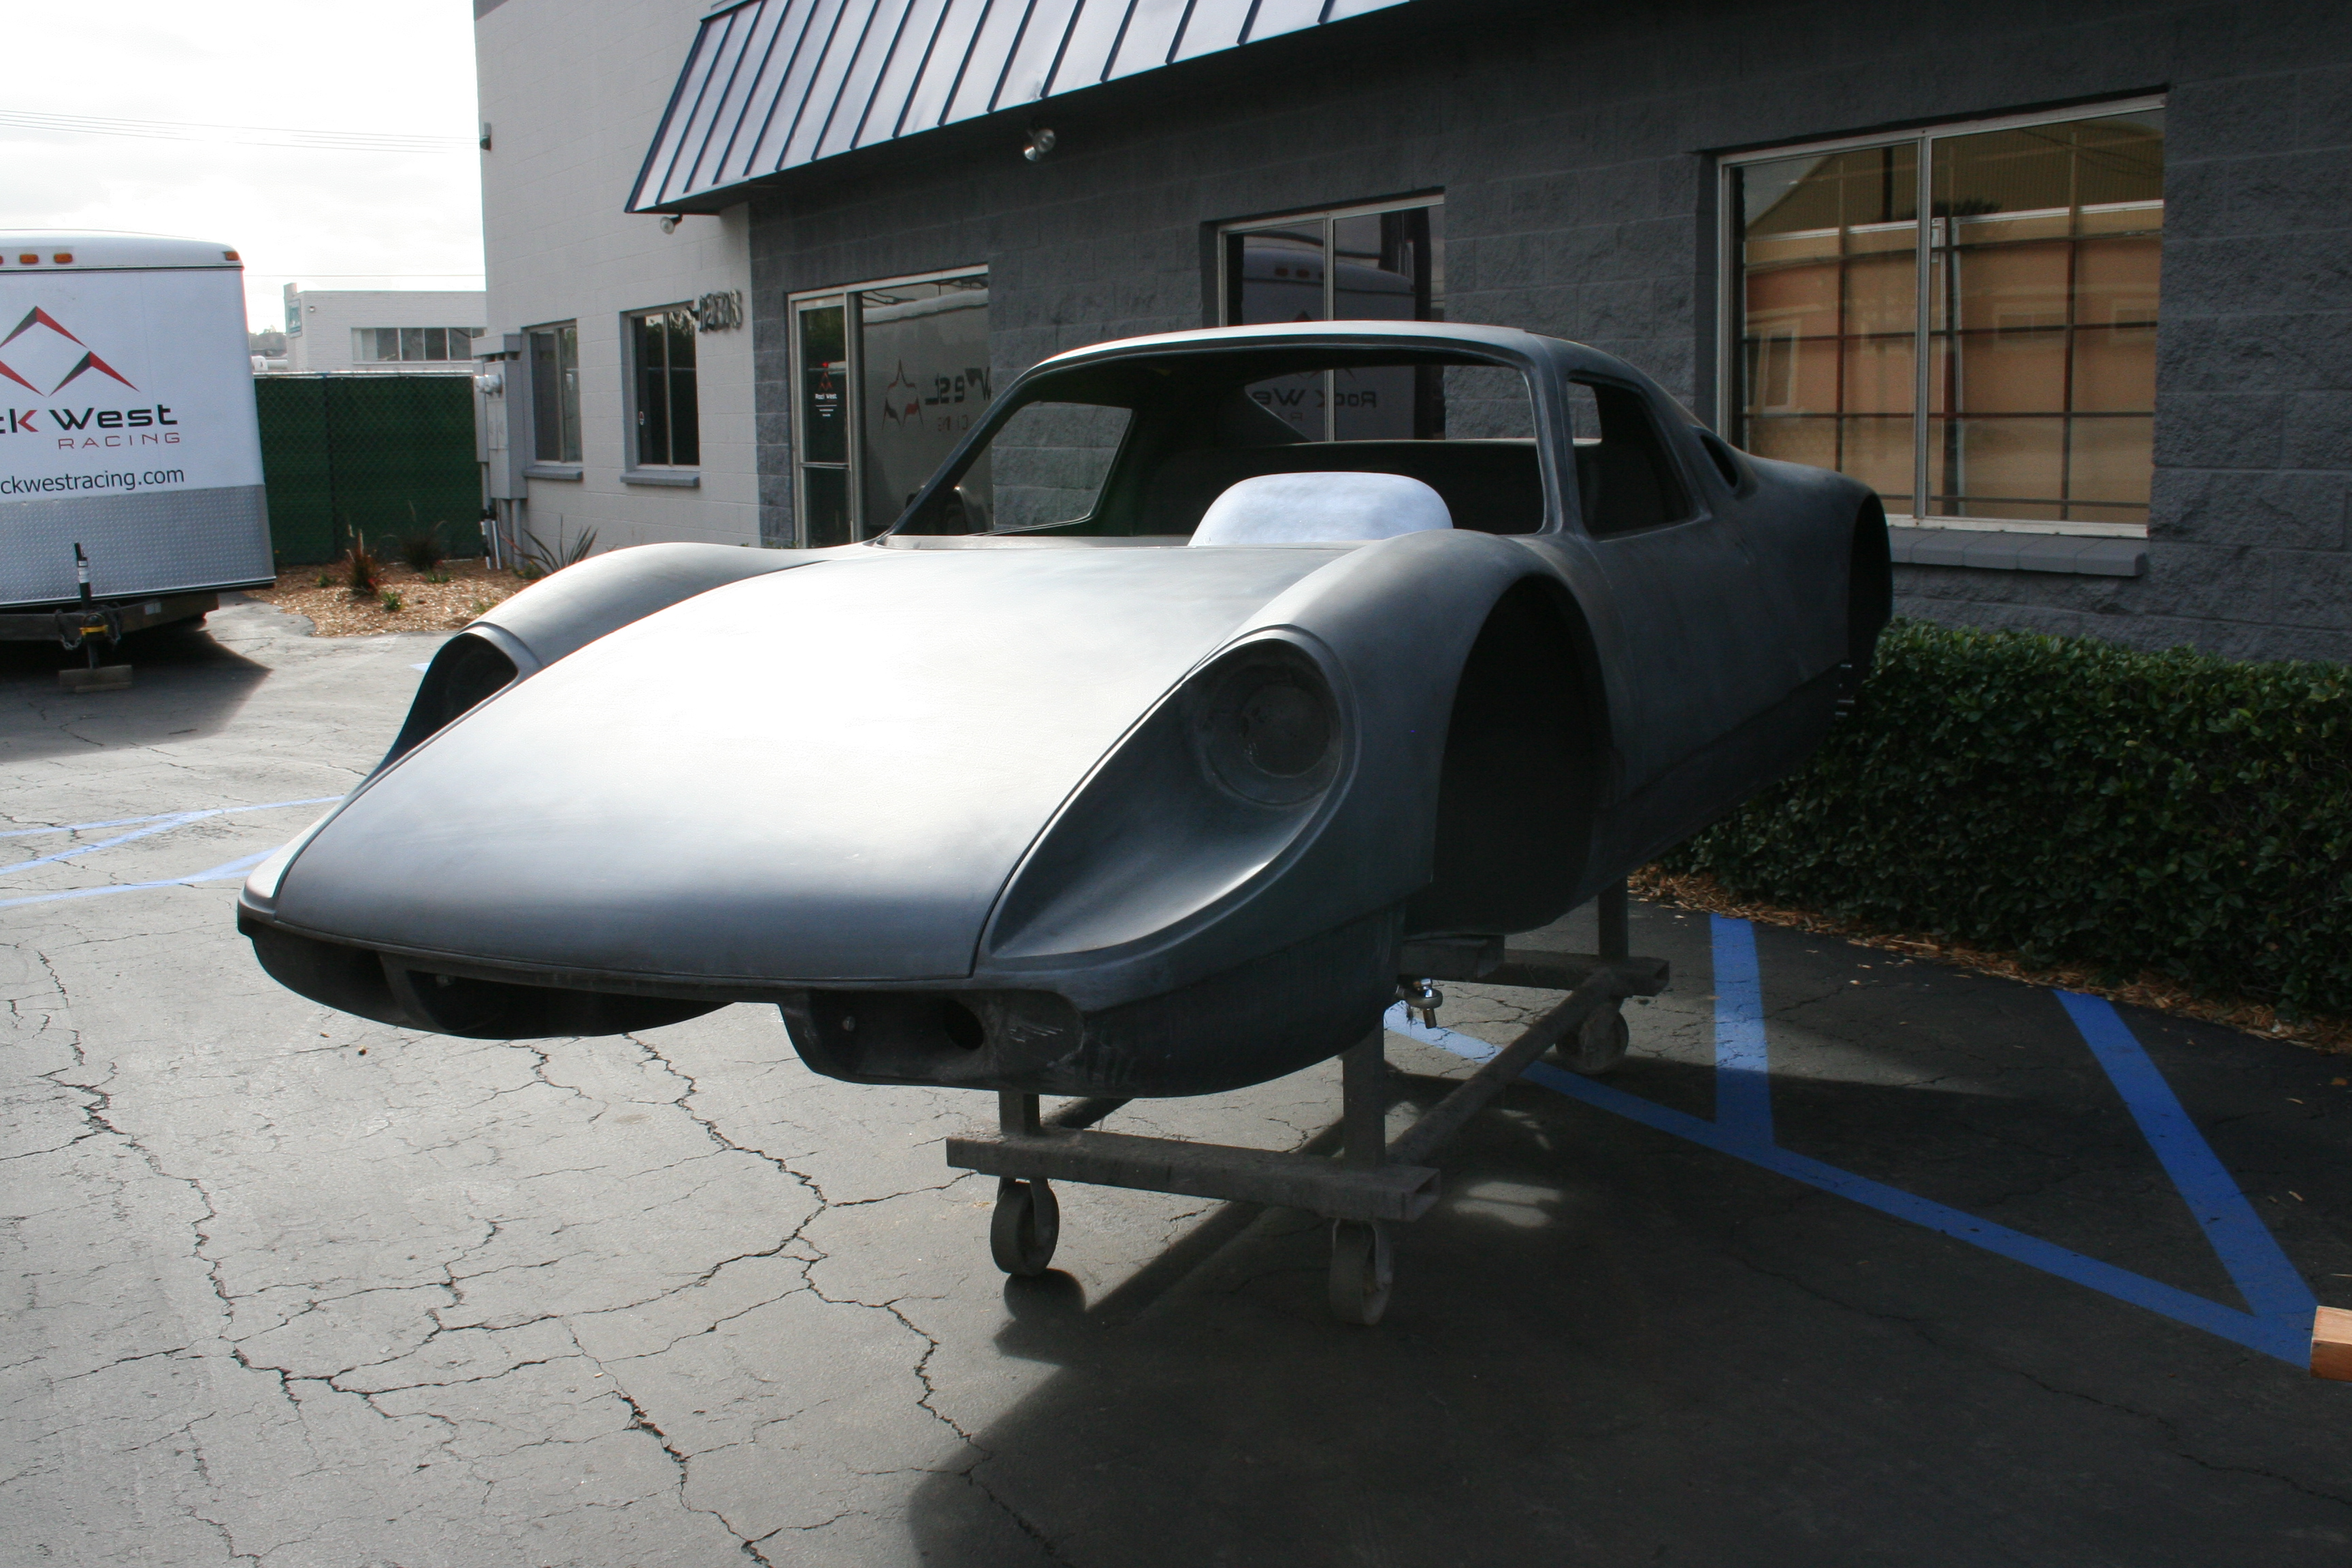 RW GTS Body, inspired by the classic Porsche 904 GTS